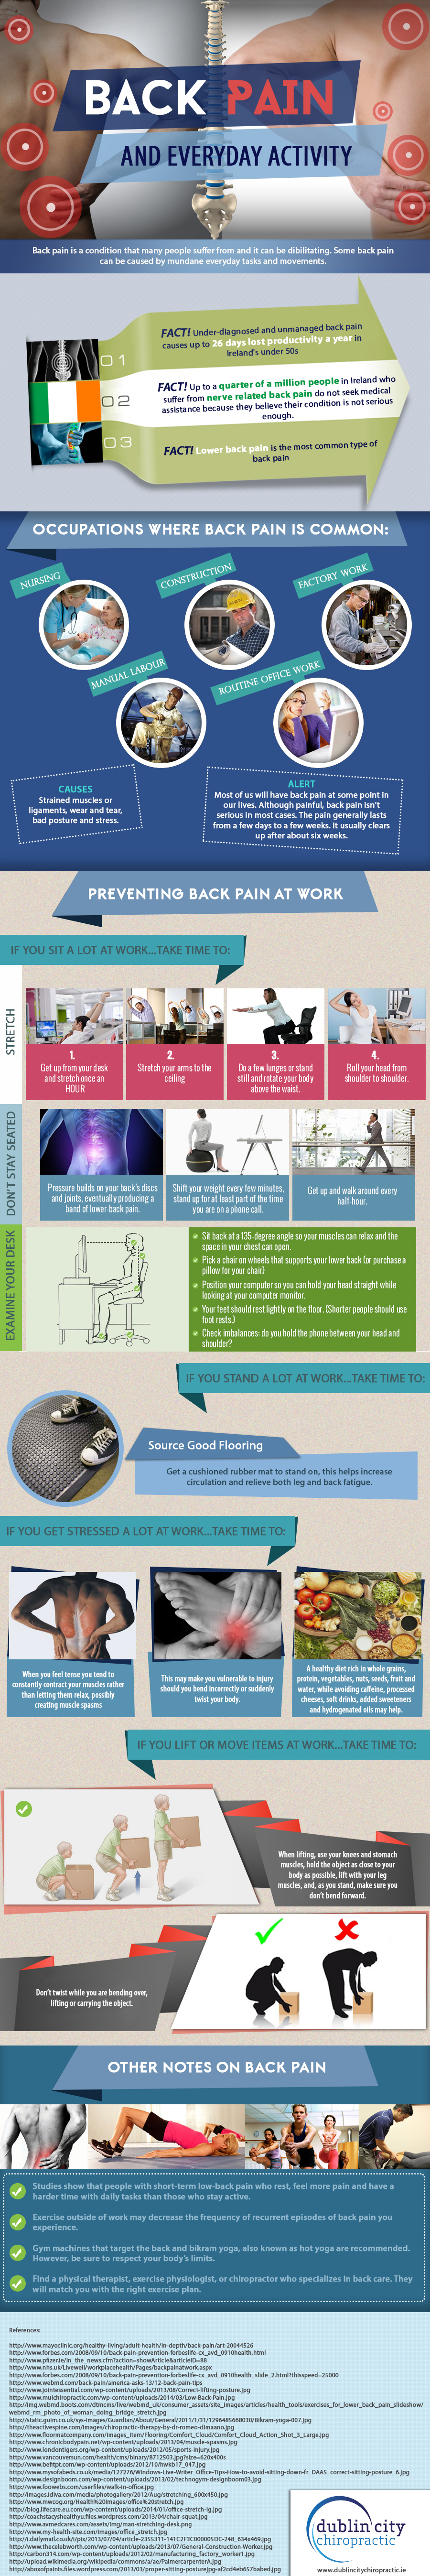 Unexpected Back Pain Hazards In Your Everyday Activities Infographic